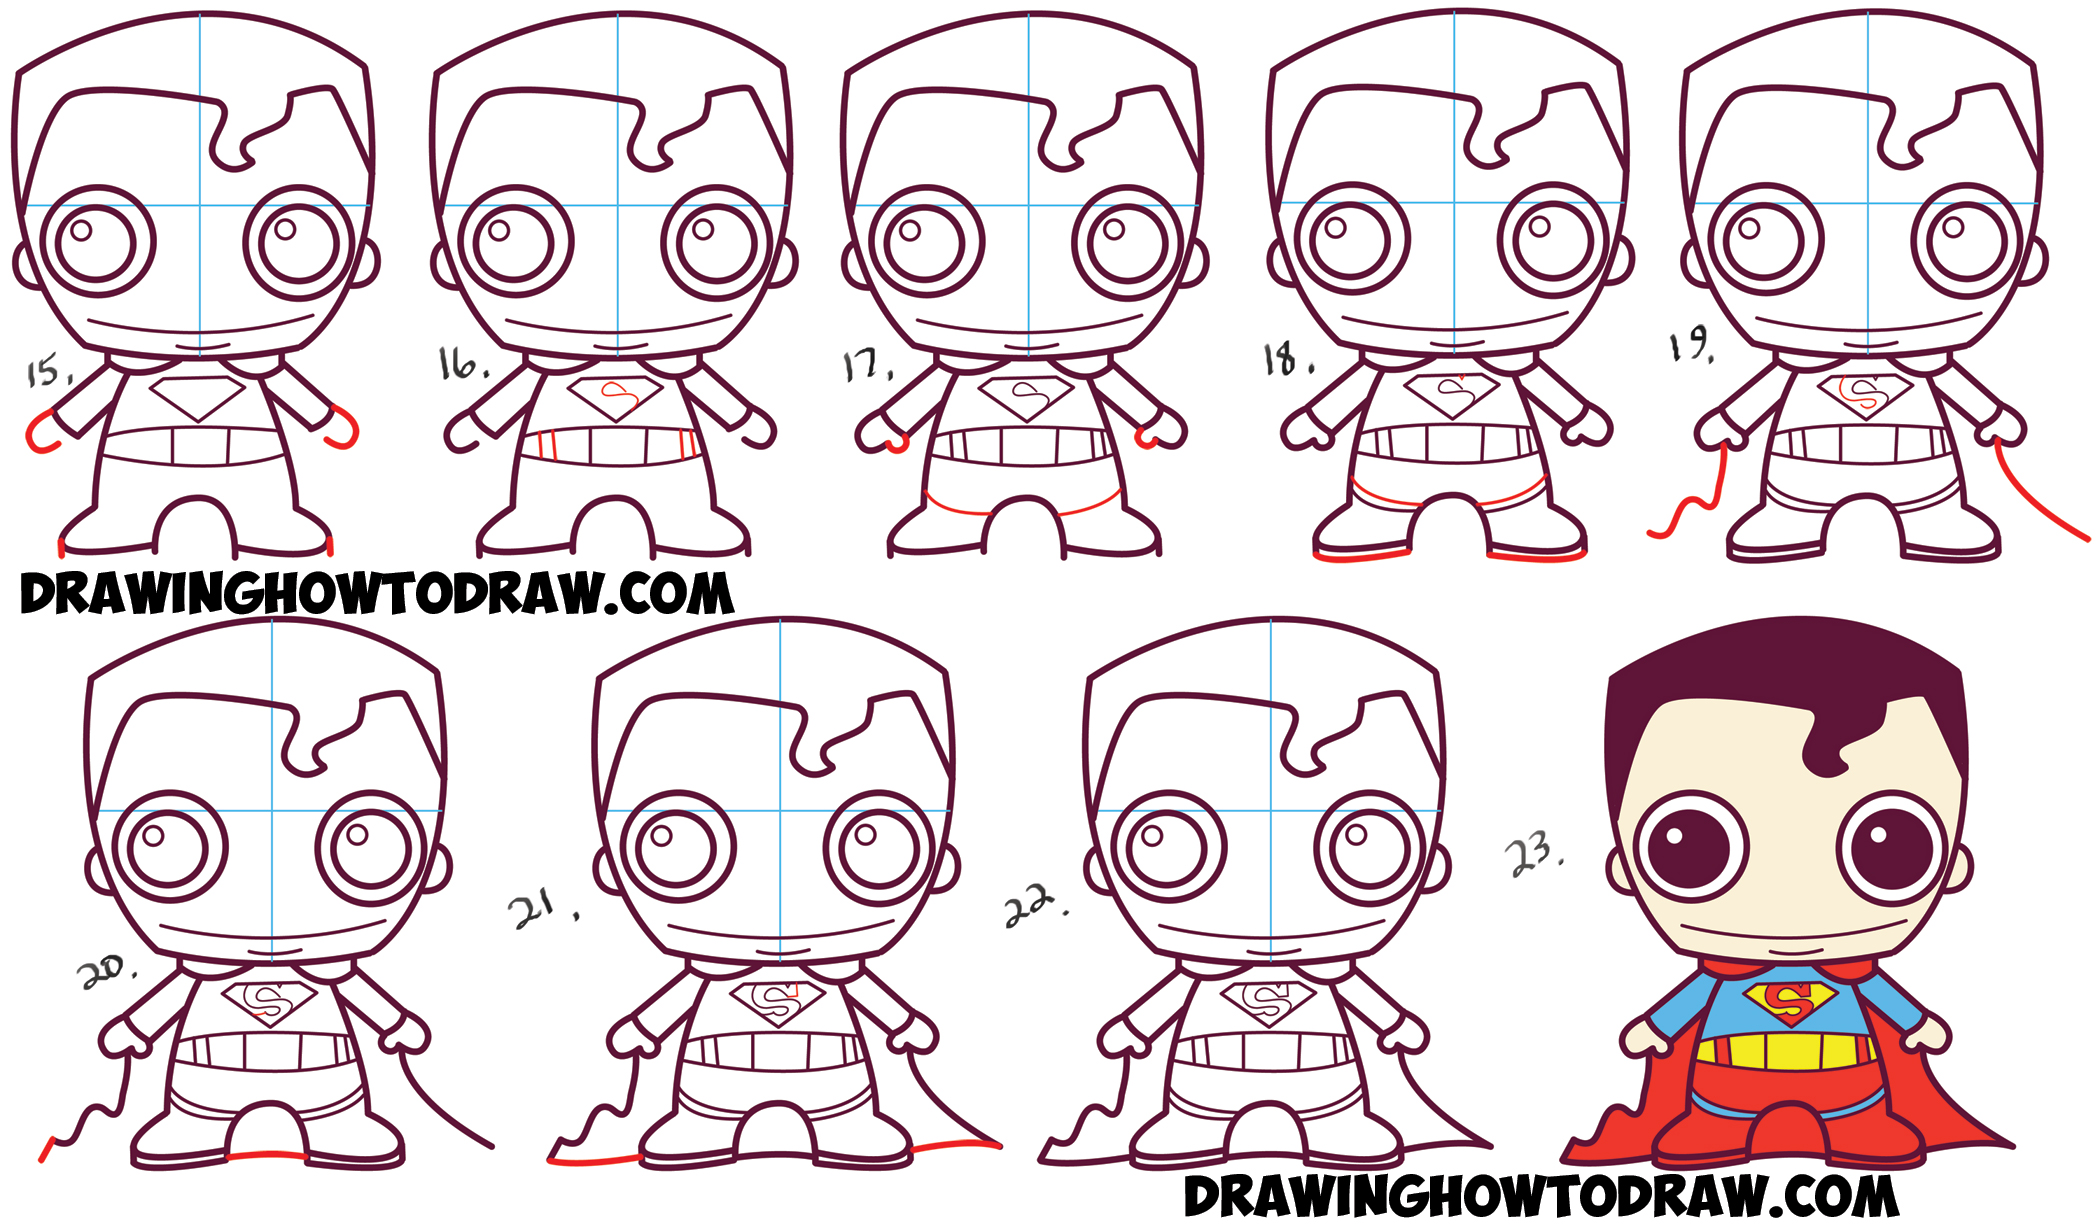 Learn How to Draw Cute Chibi Baby Kawaii Superman from DC Comics in Simple Steps Drawing Lesson for Kids